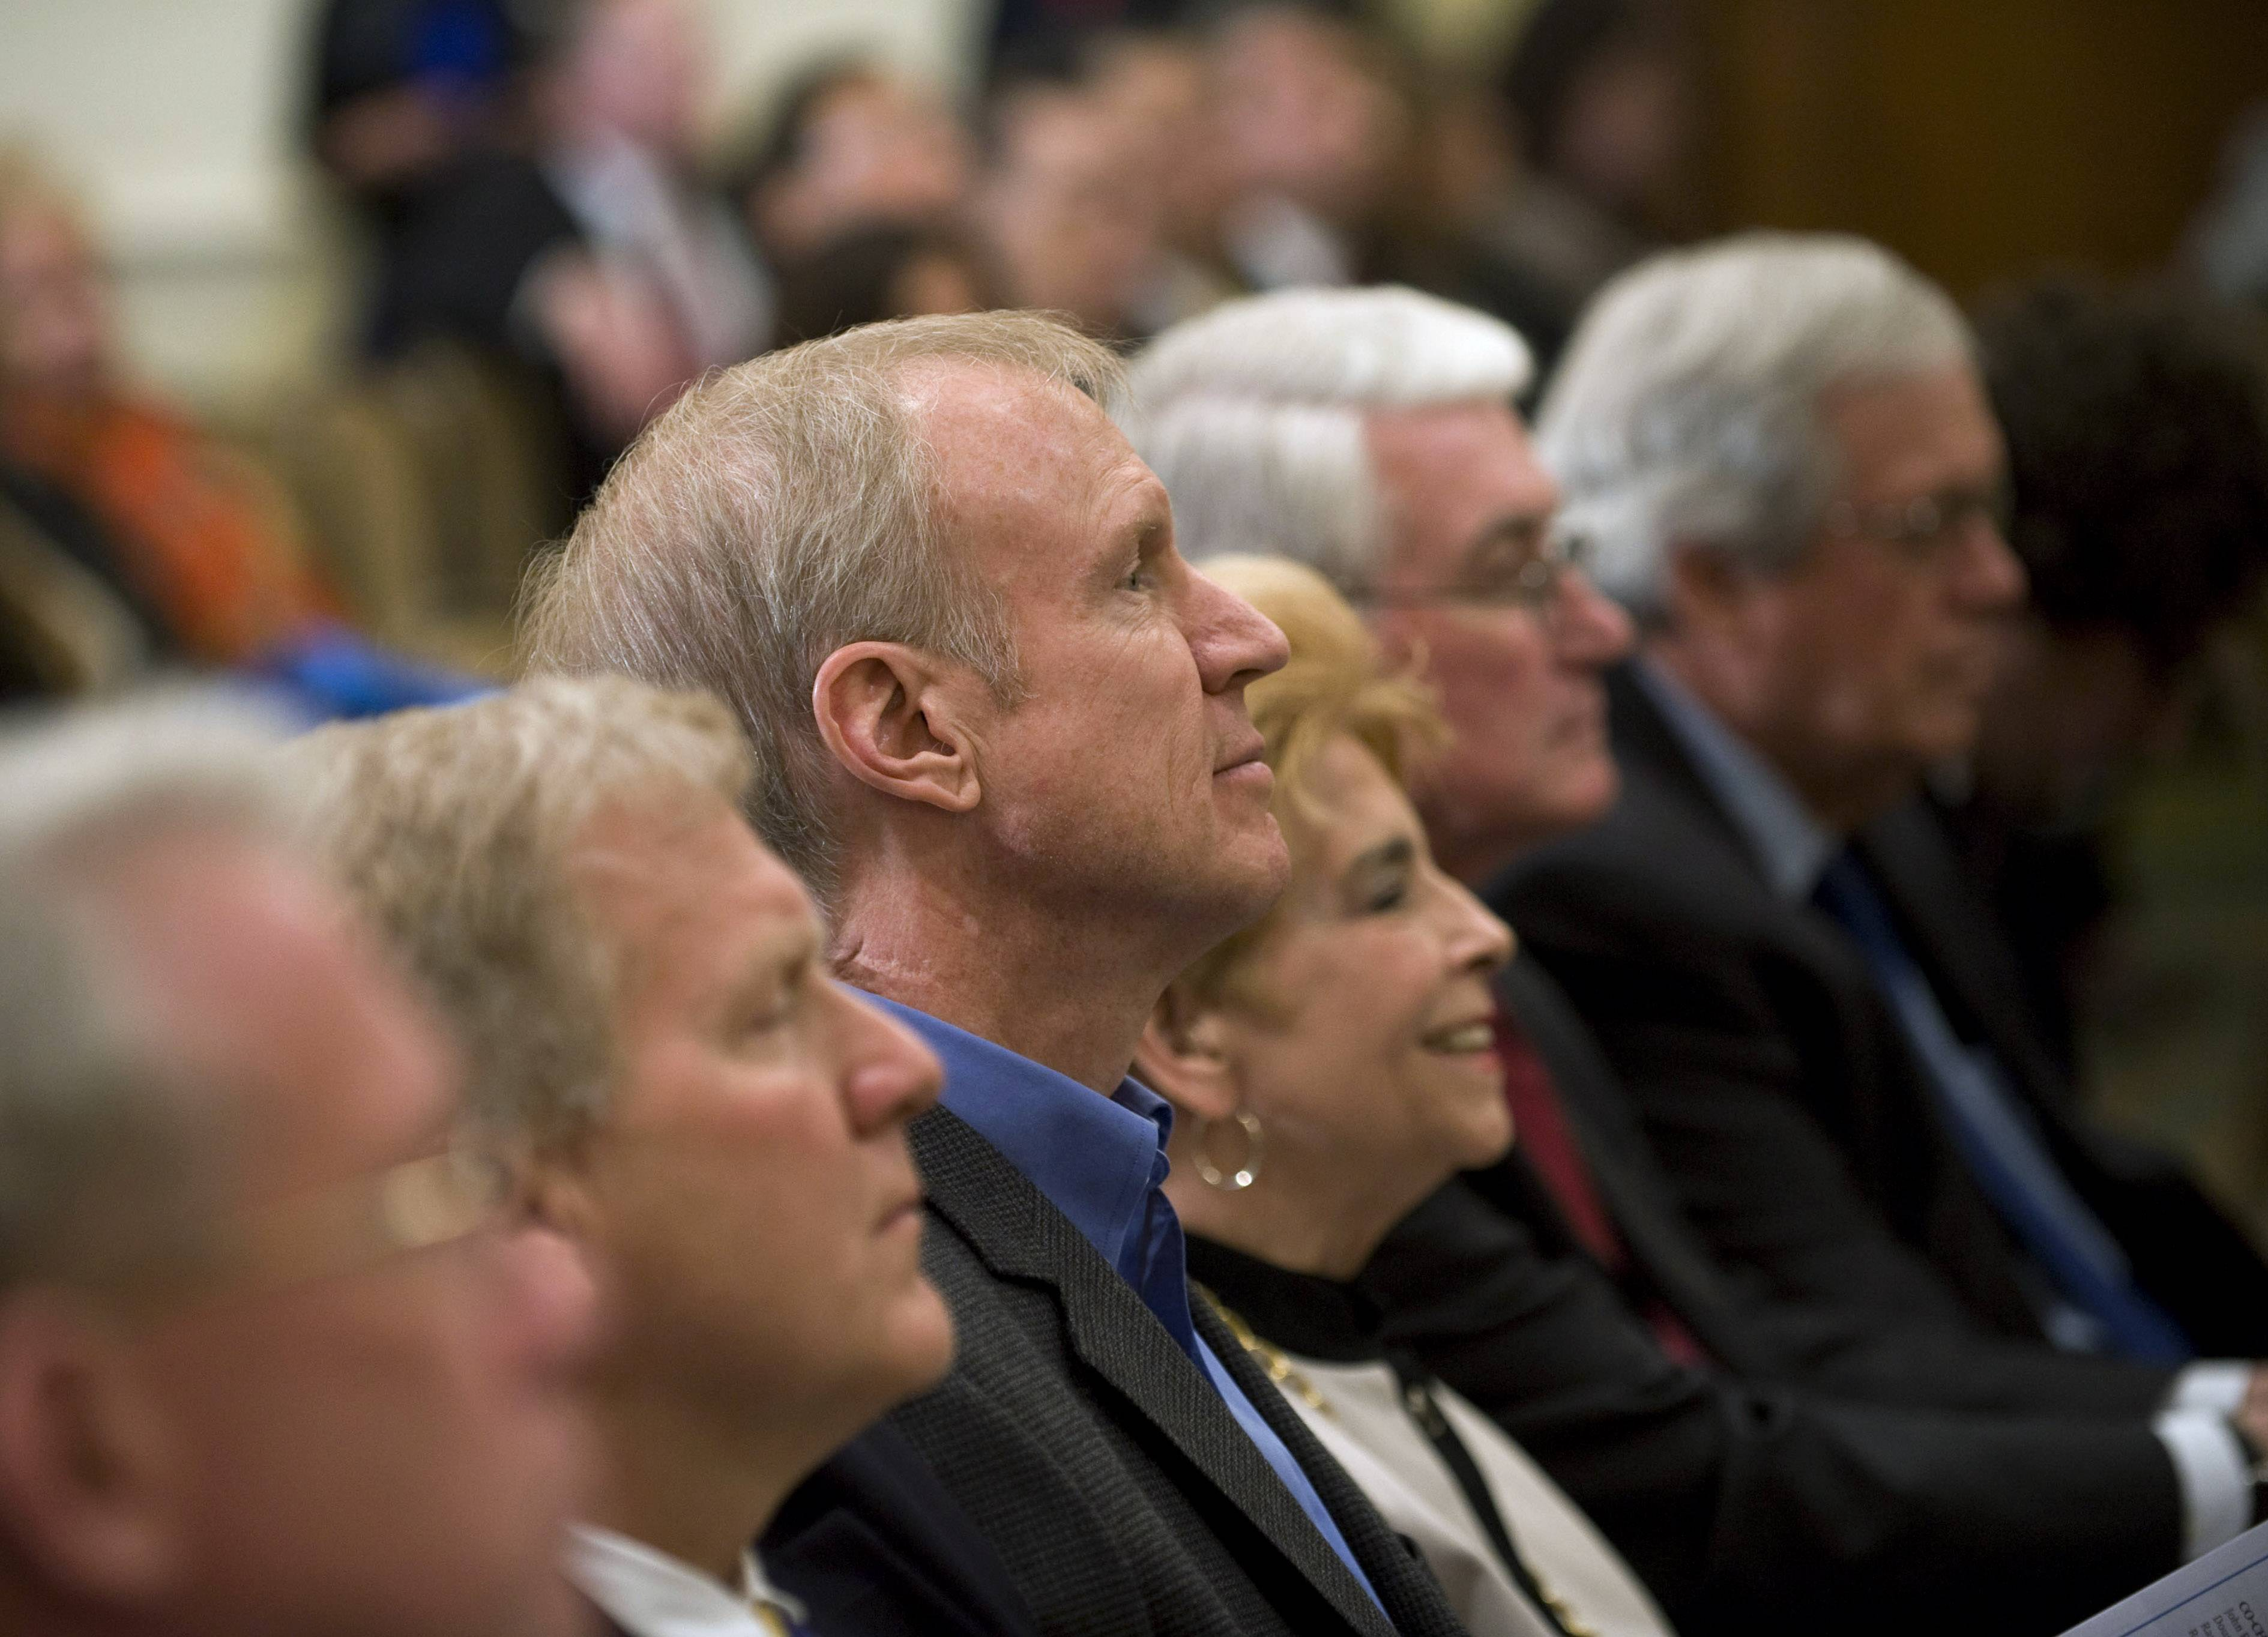 Illinois Republican gubernatorial candidate Bruce Rauner, center, listens to speakers at the Illinois Business Immigration Coalition meeting on Tuesday. Rauner and other top Illinois Republicans who support immigration reform legislation that's stalled in Washington attended the event in Chicago.